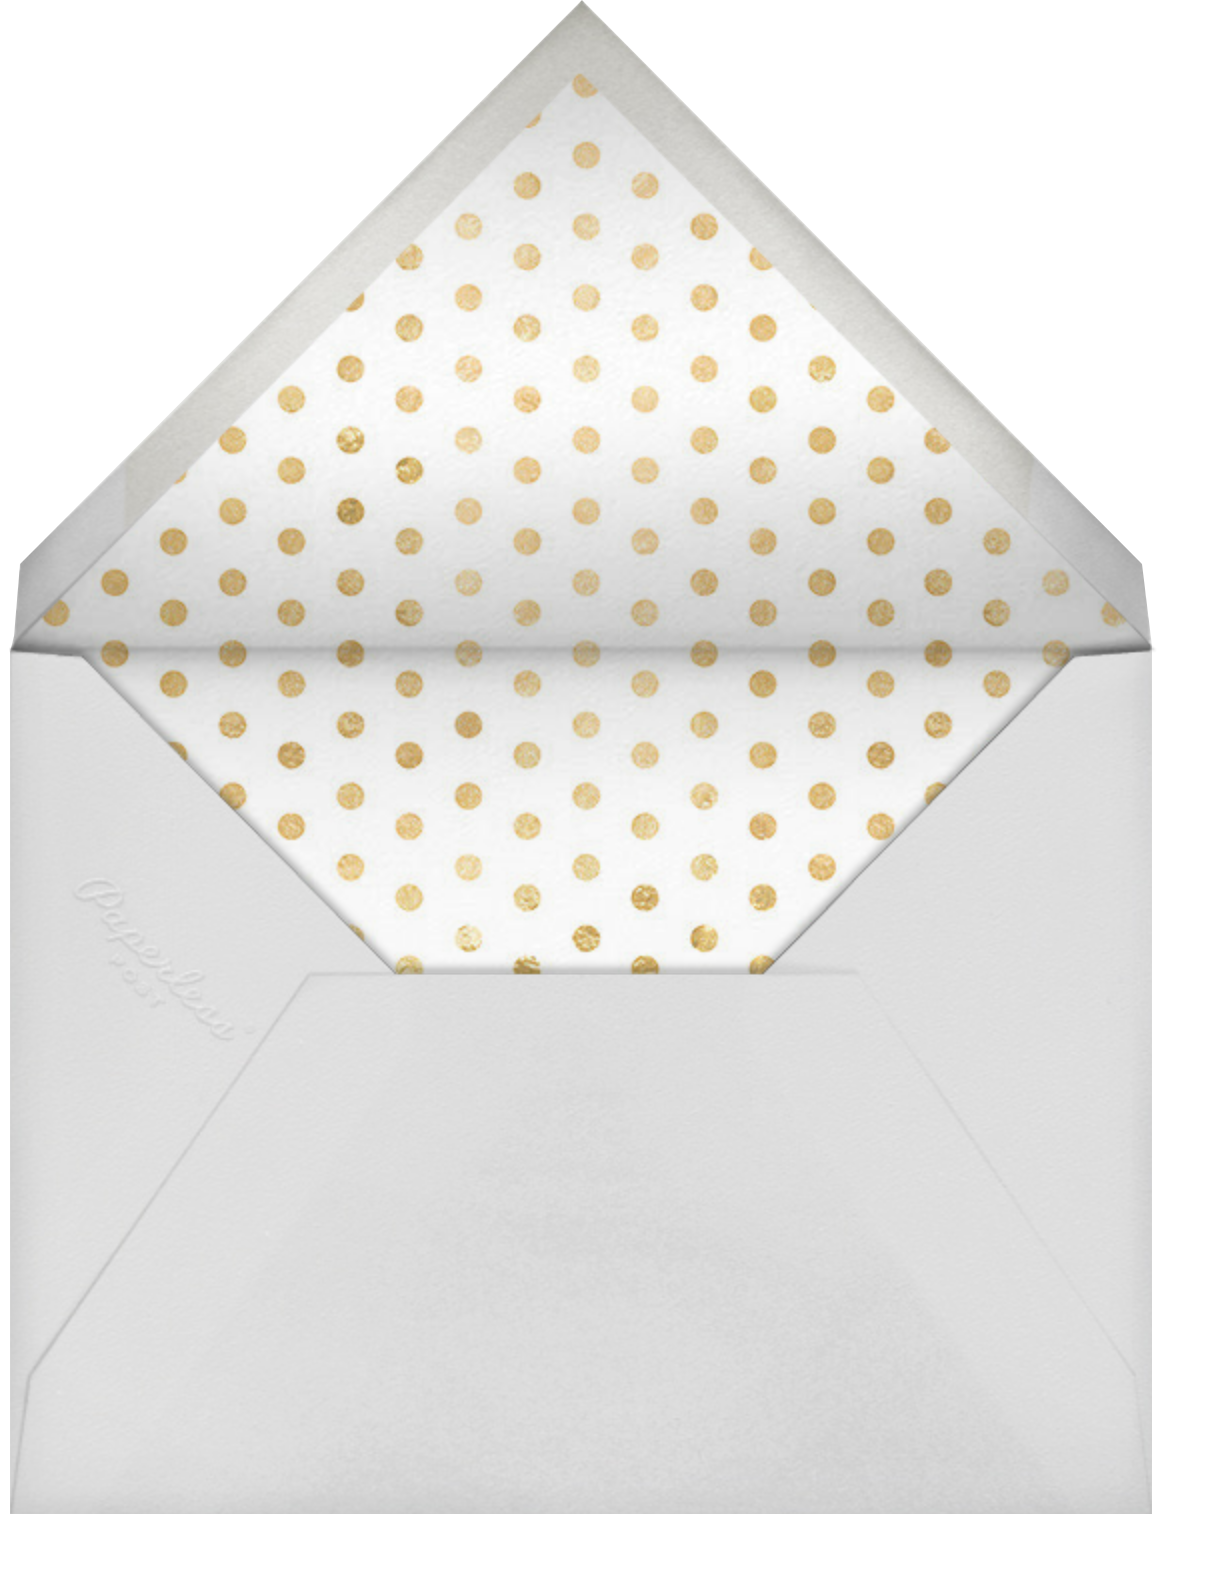 Layer Cake - Rifle Paper Co. - Birthday - envelope back